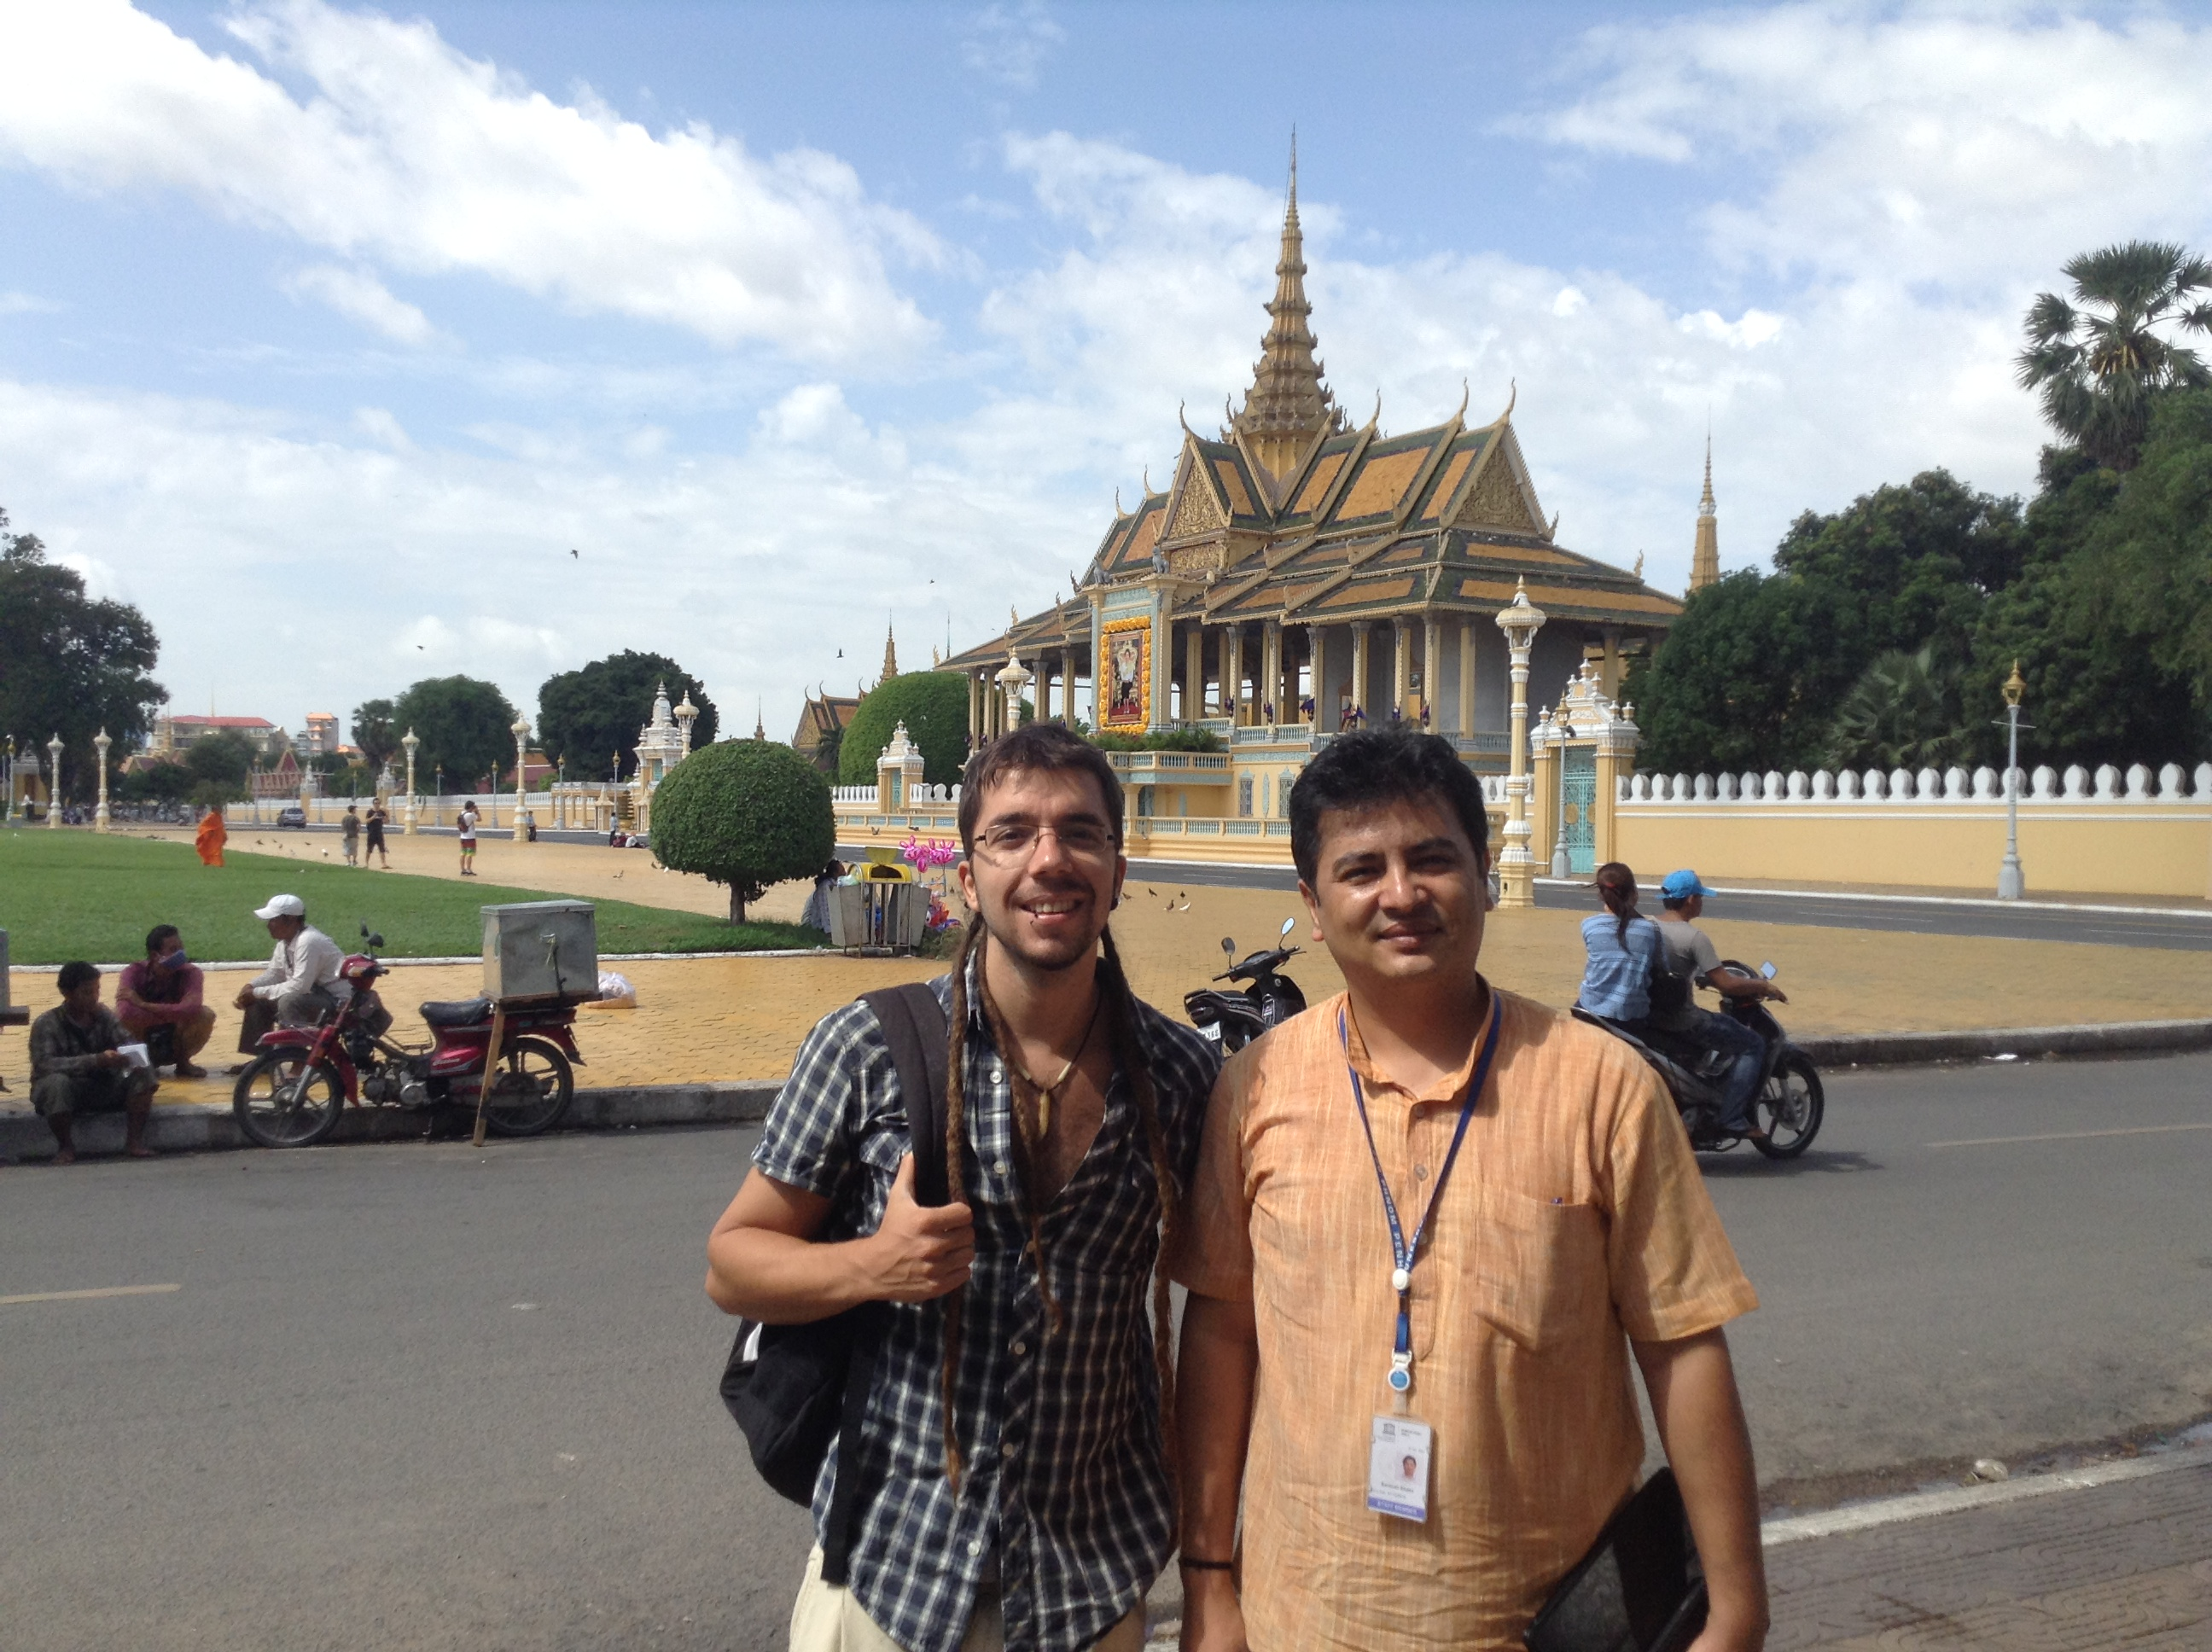 Mr. Santosh Khatri, Education Specialist at UNESCO Cambodia, Javier Collado, Global Education Magazine